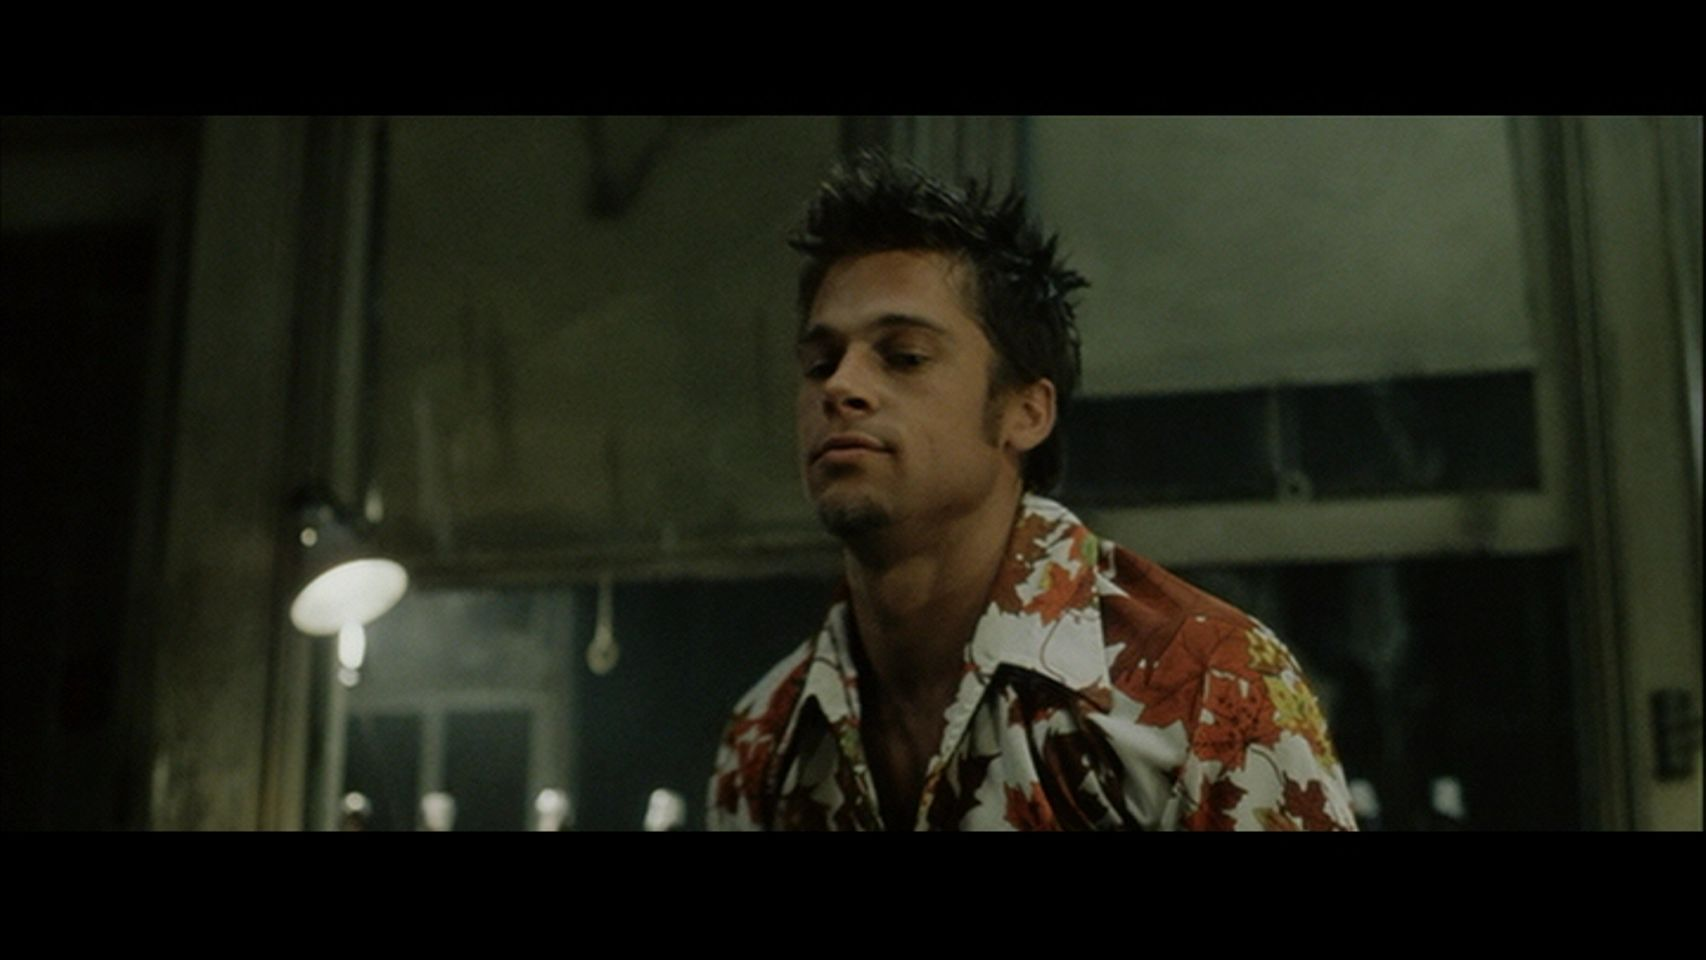 Fight Club - Fight Club Image (4748606) - Fanpop Helena Bonham Carter